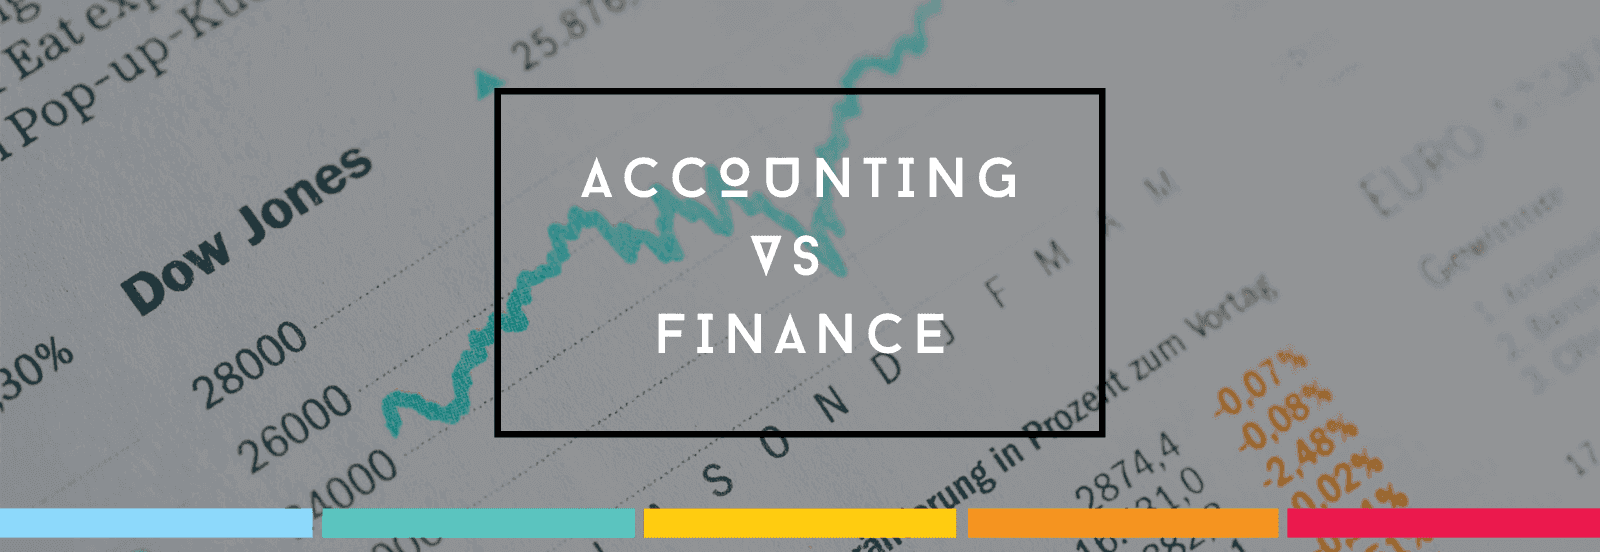 Accounting vs finance display version